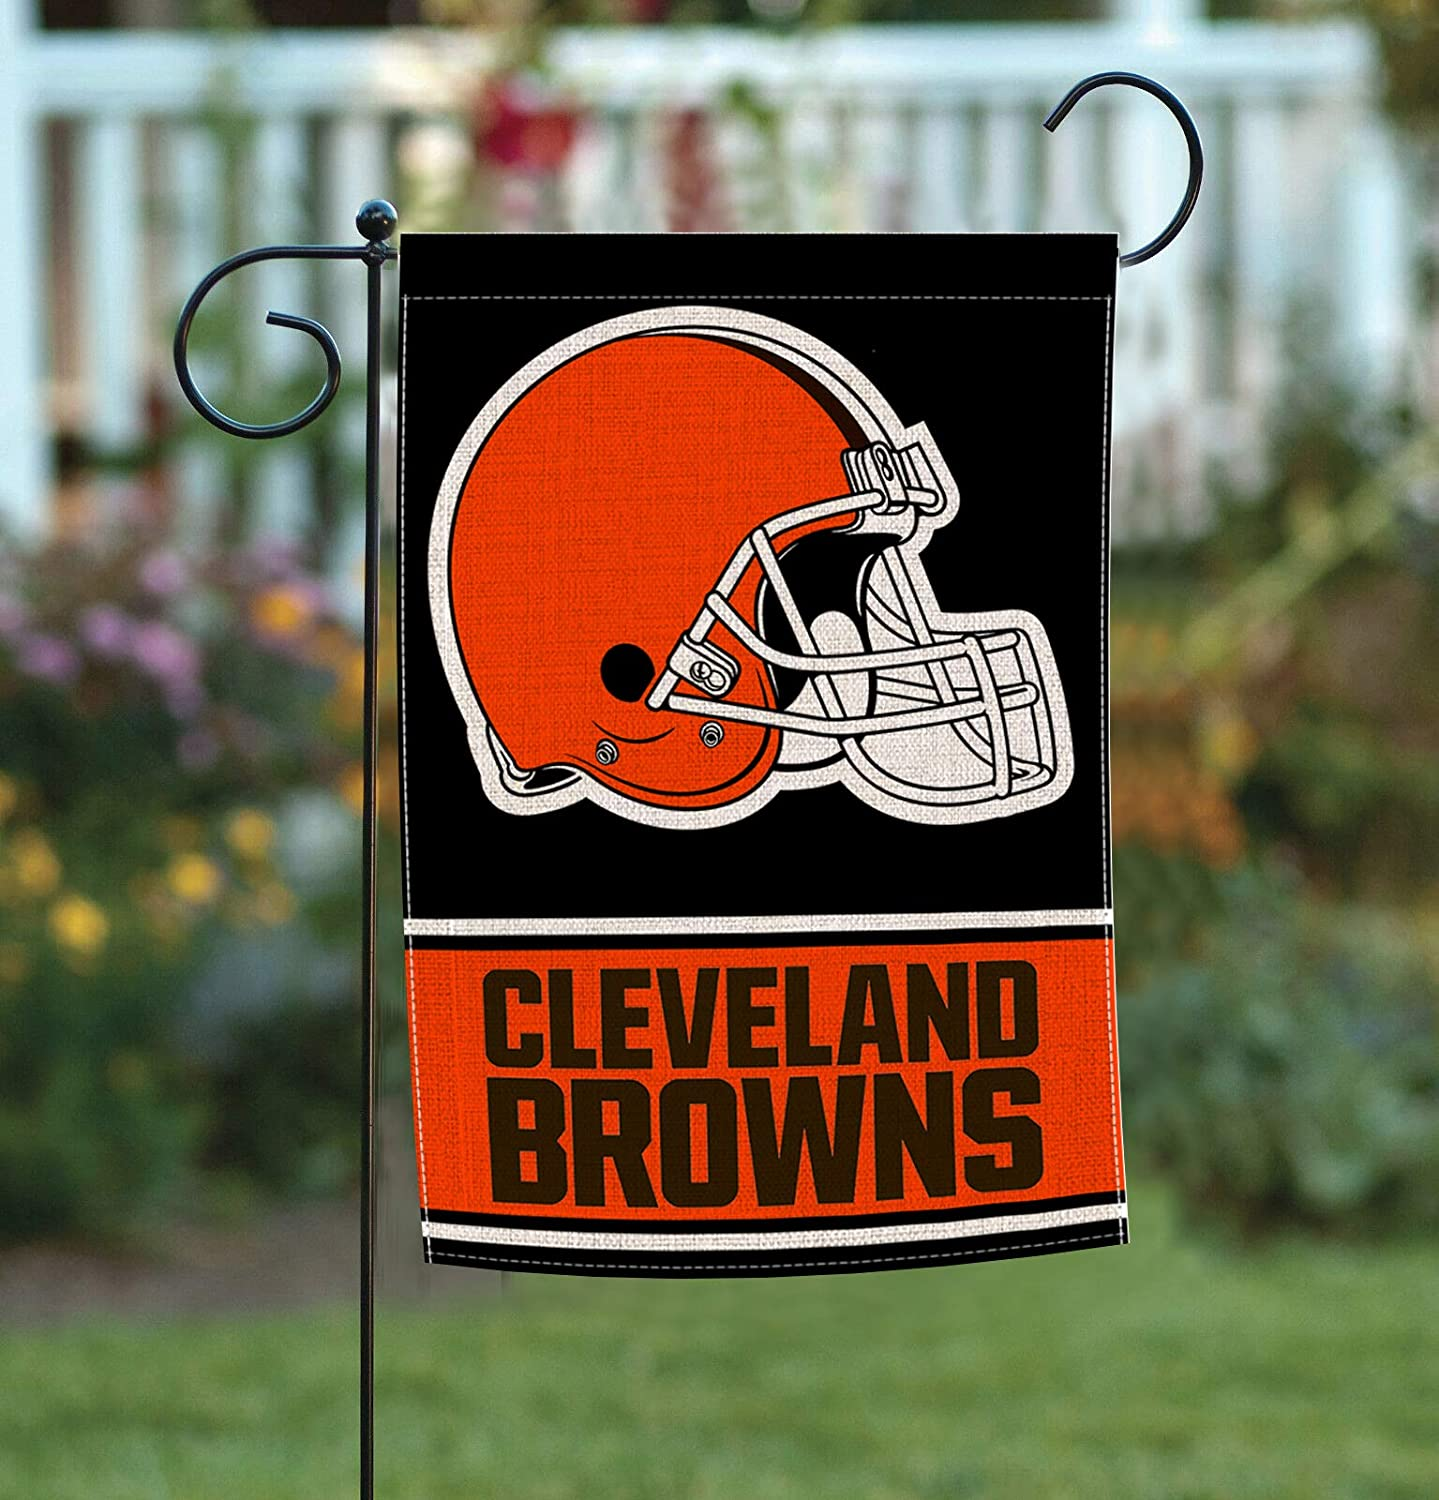 Double Sided Burlap Garden Flag, Premium Material, American Football Holiday Outdoor Decorative Small Flags for Home House Garden Yard Lawn Patio, 12.5 x 18 inch AG024